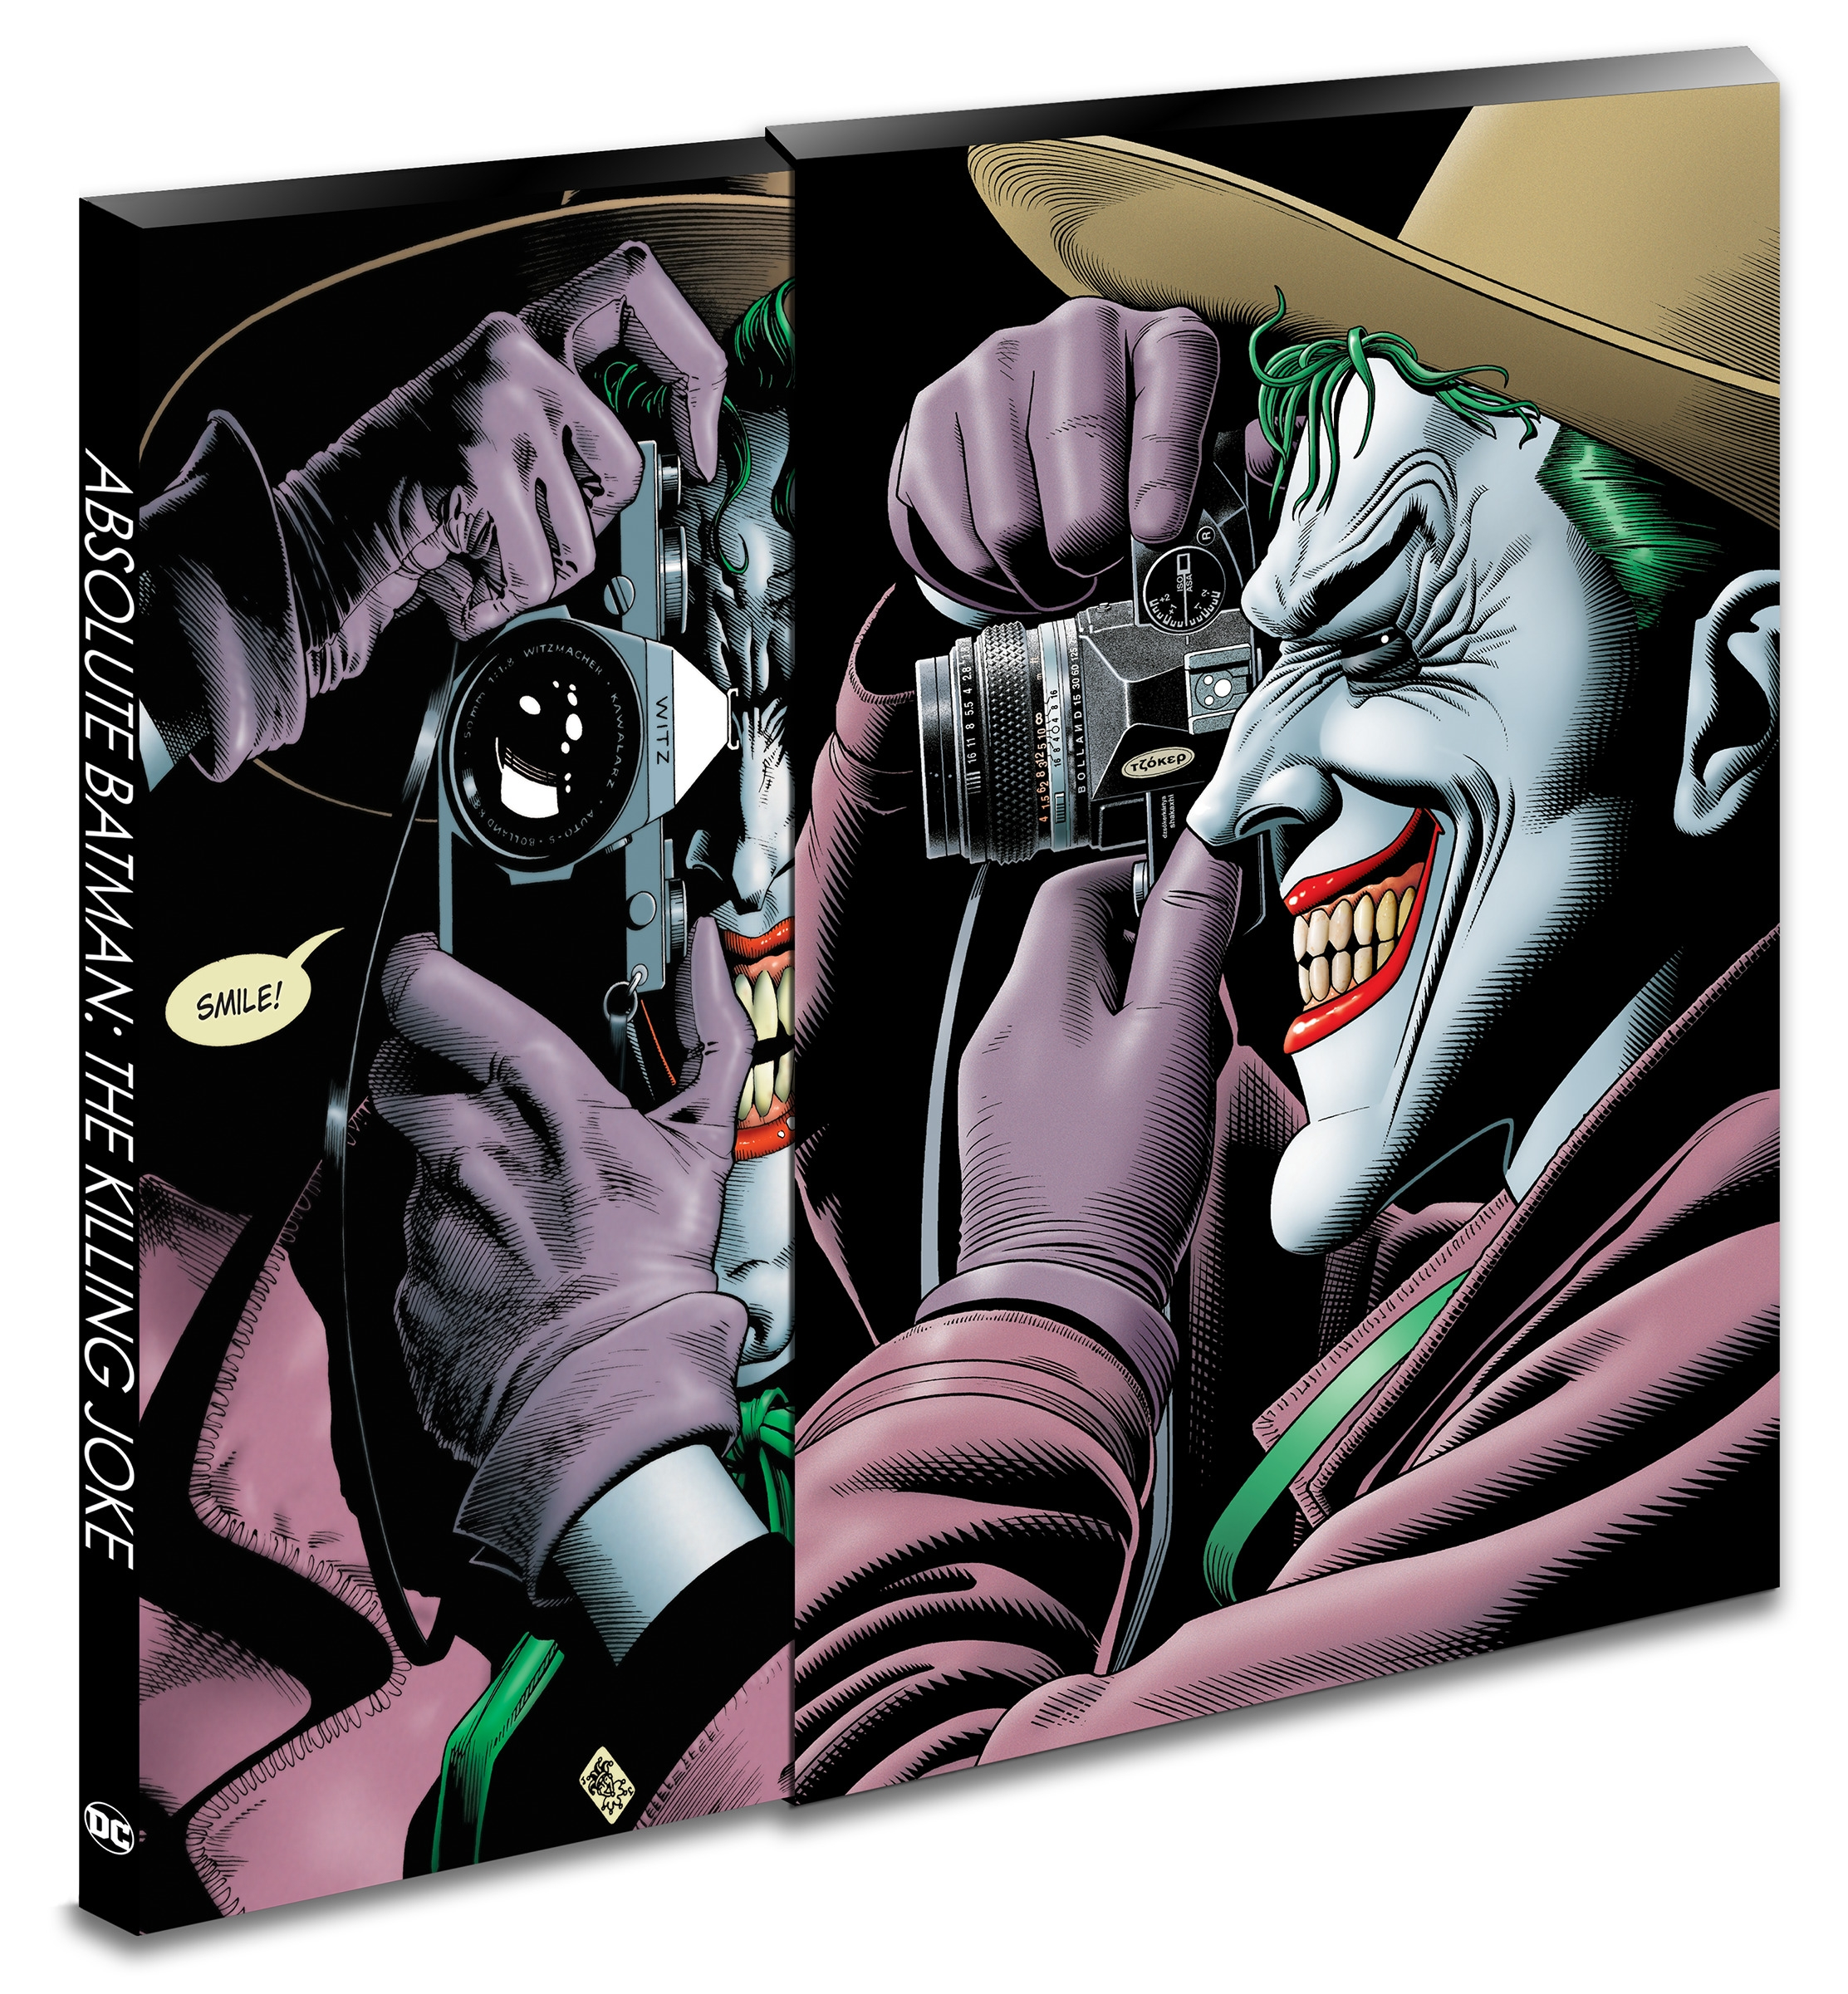 Absolute Batman: The Killing Joke - 30th Anniversary Edition by Alan Moore, ISBN: 9781401284121